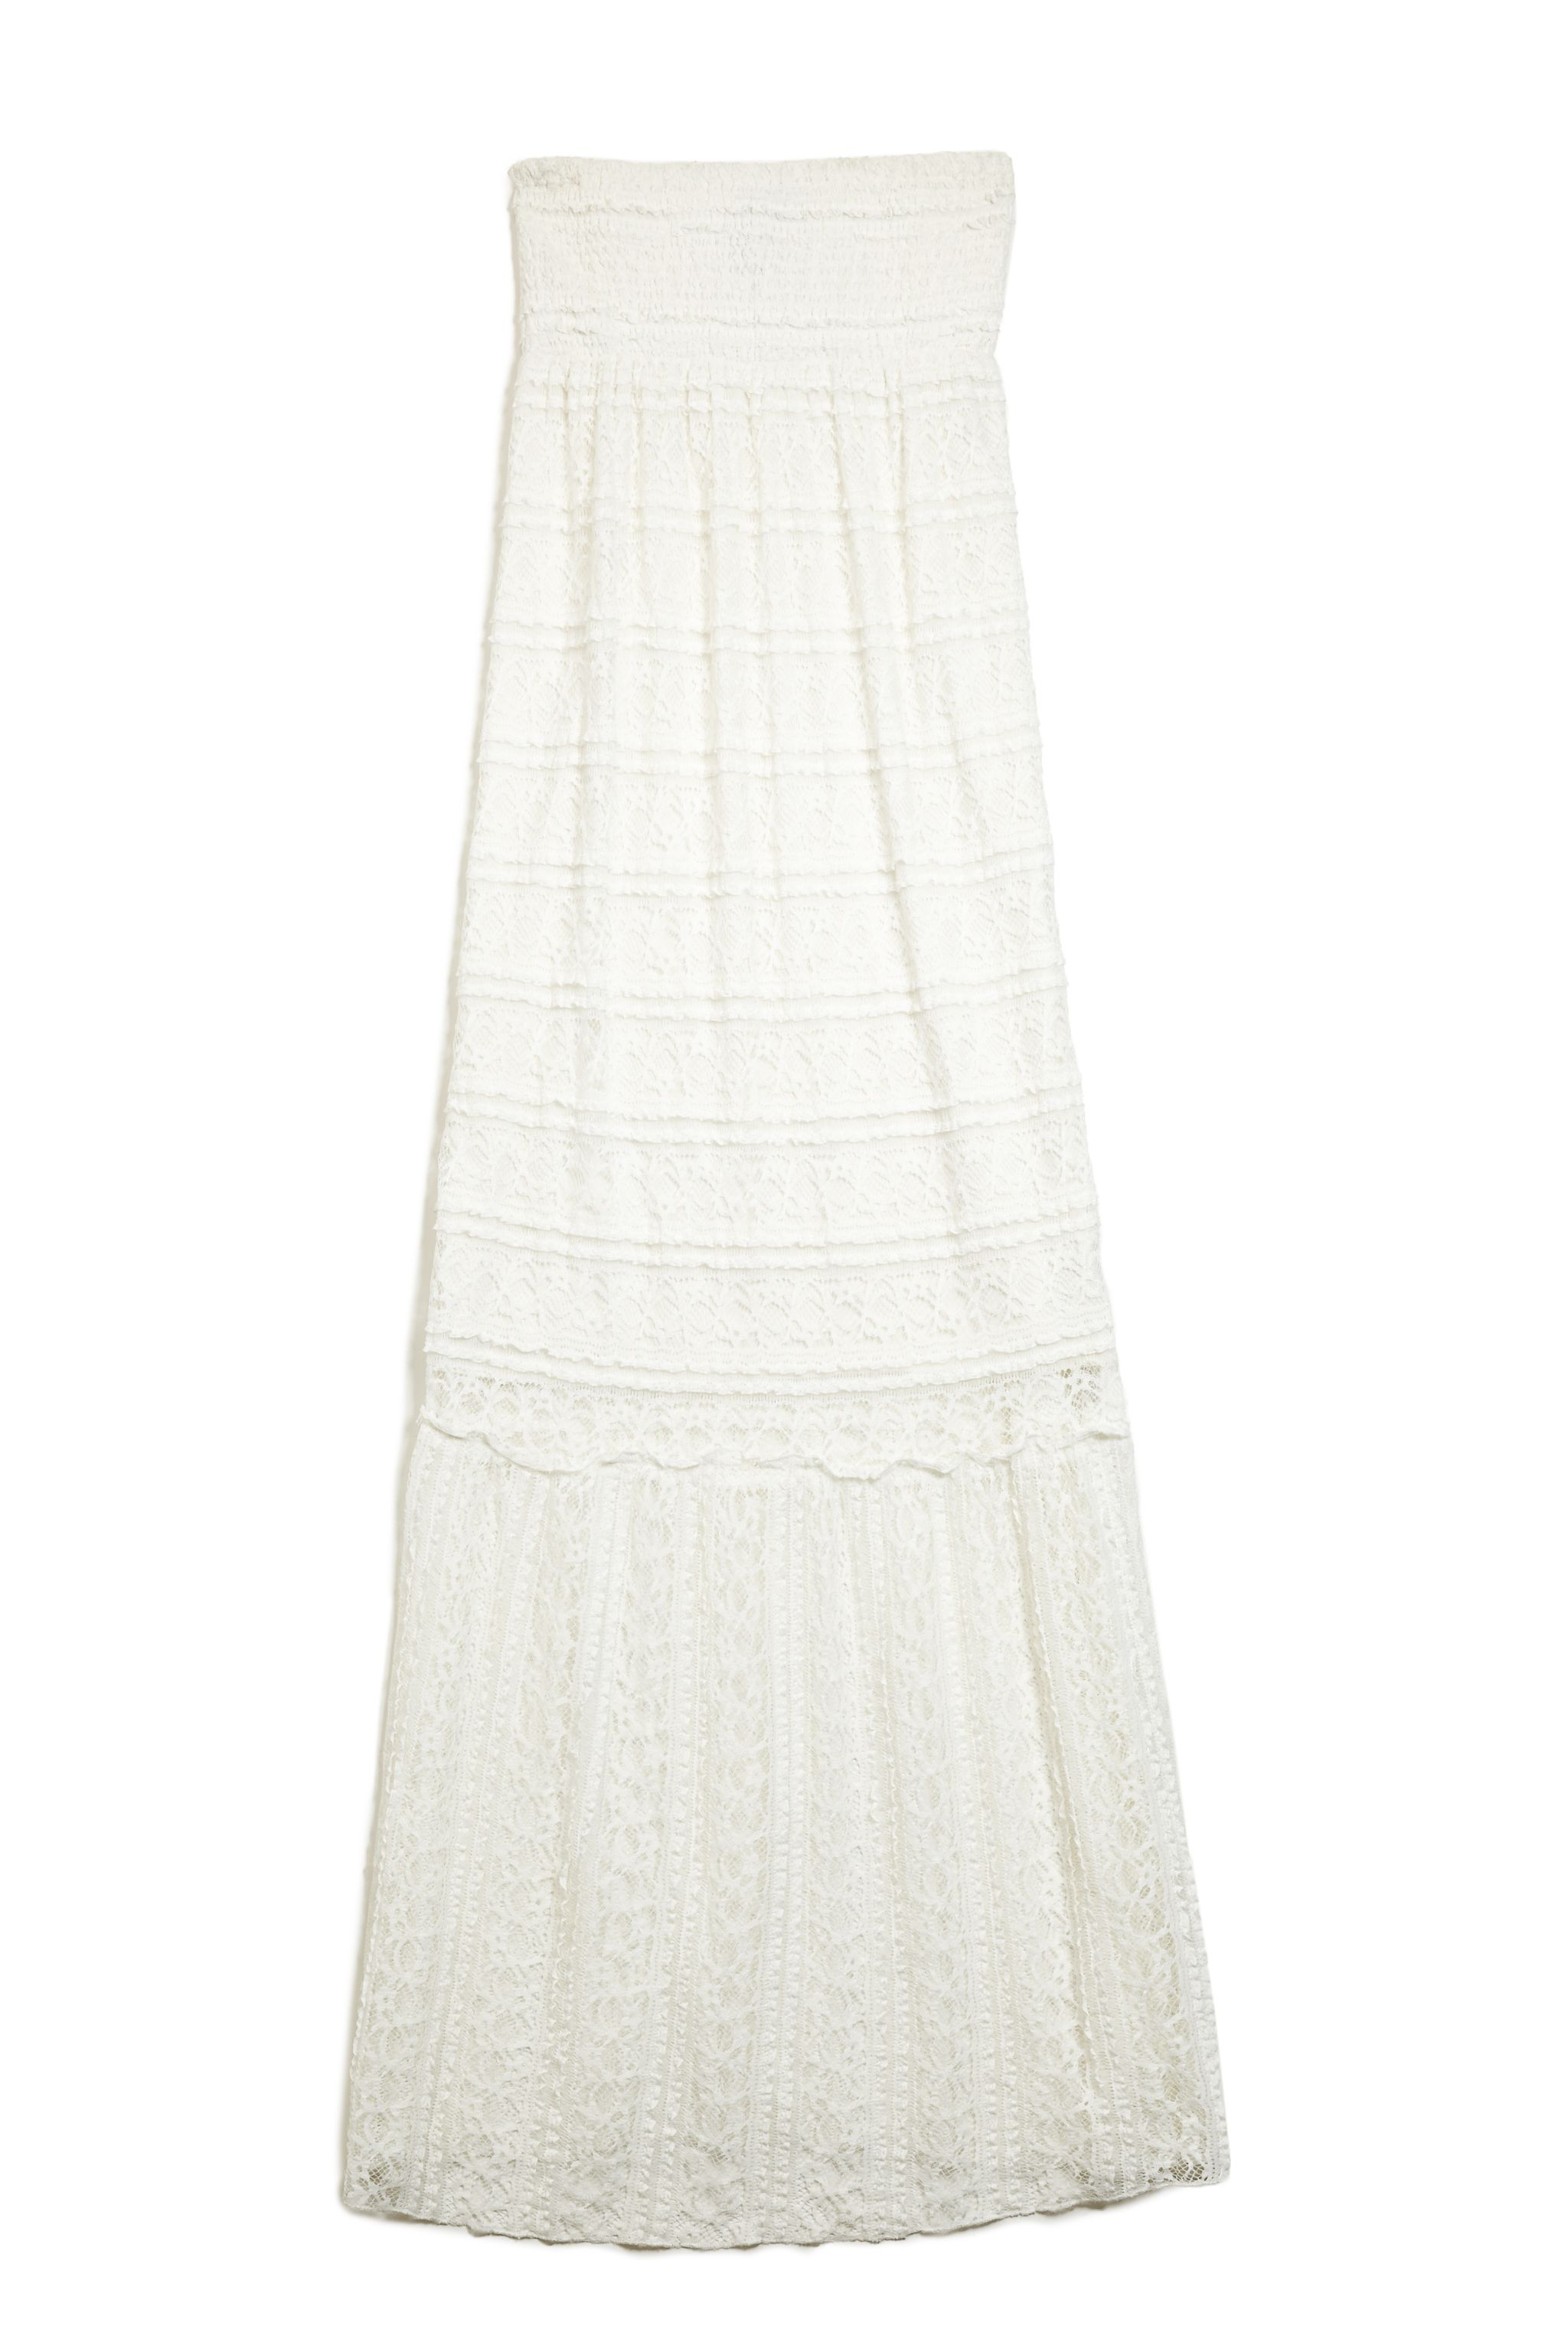 A simple lace maxi enter to win this dress through our getdressed